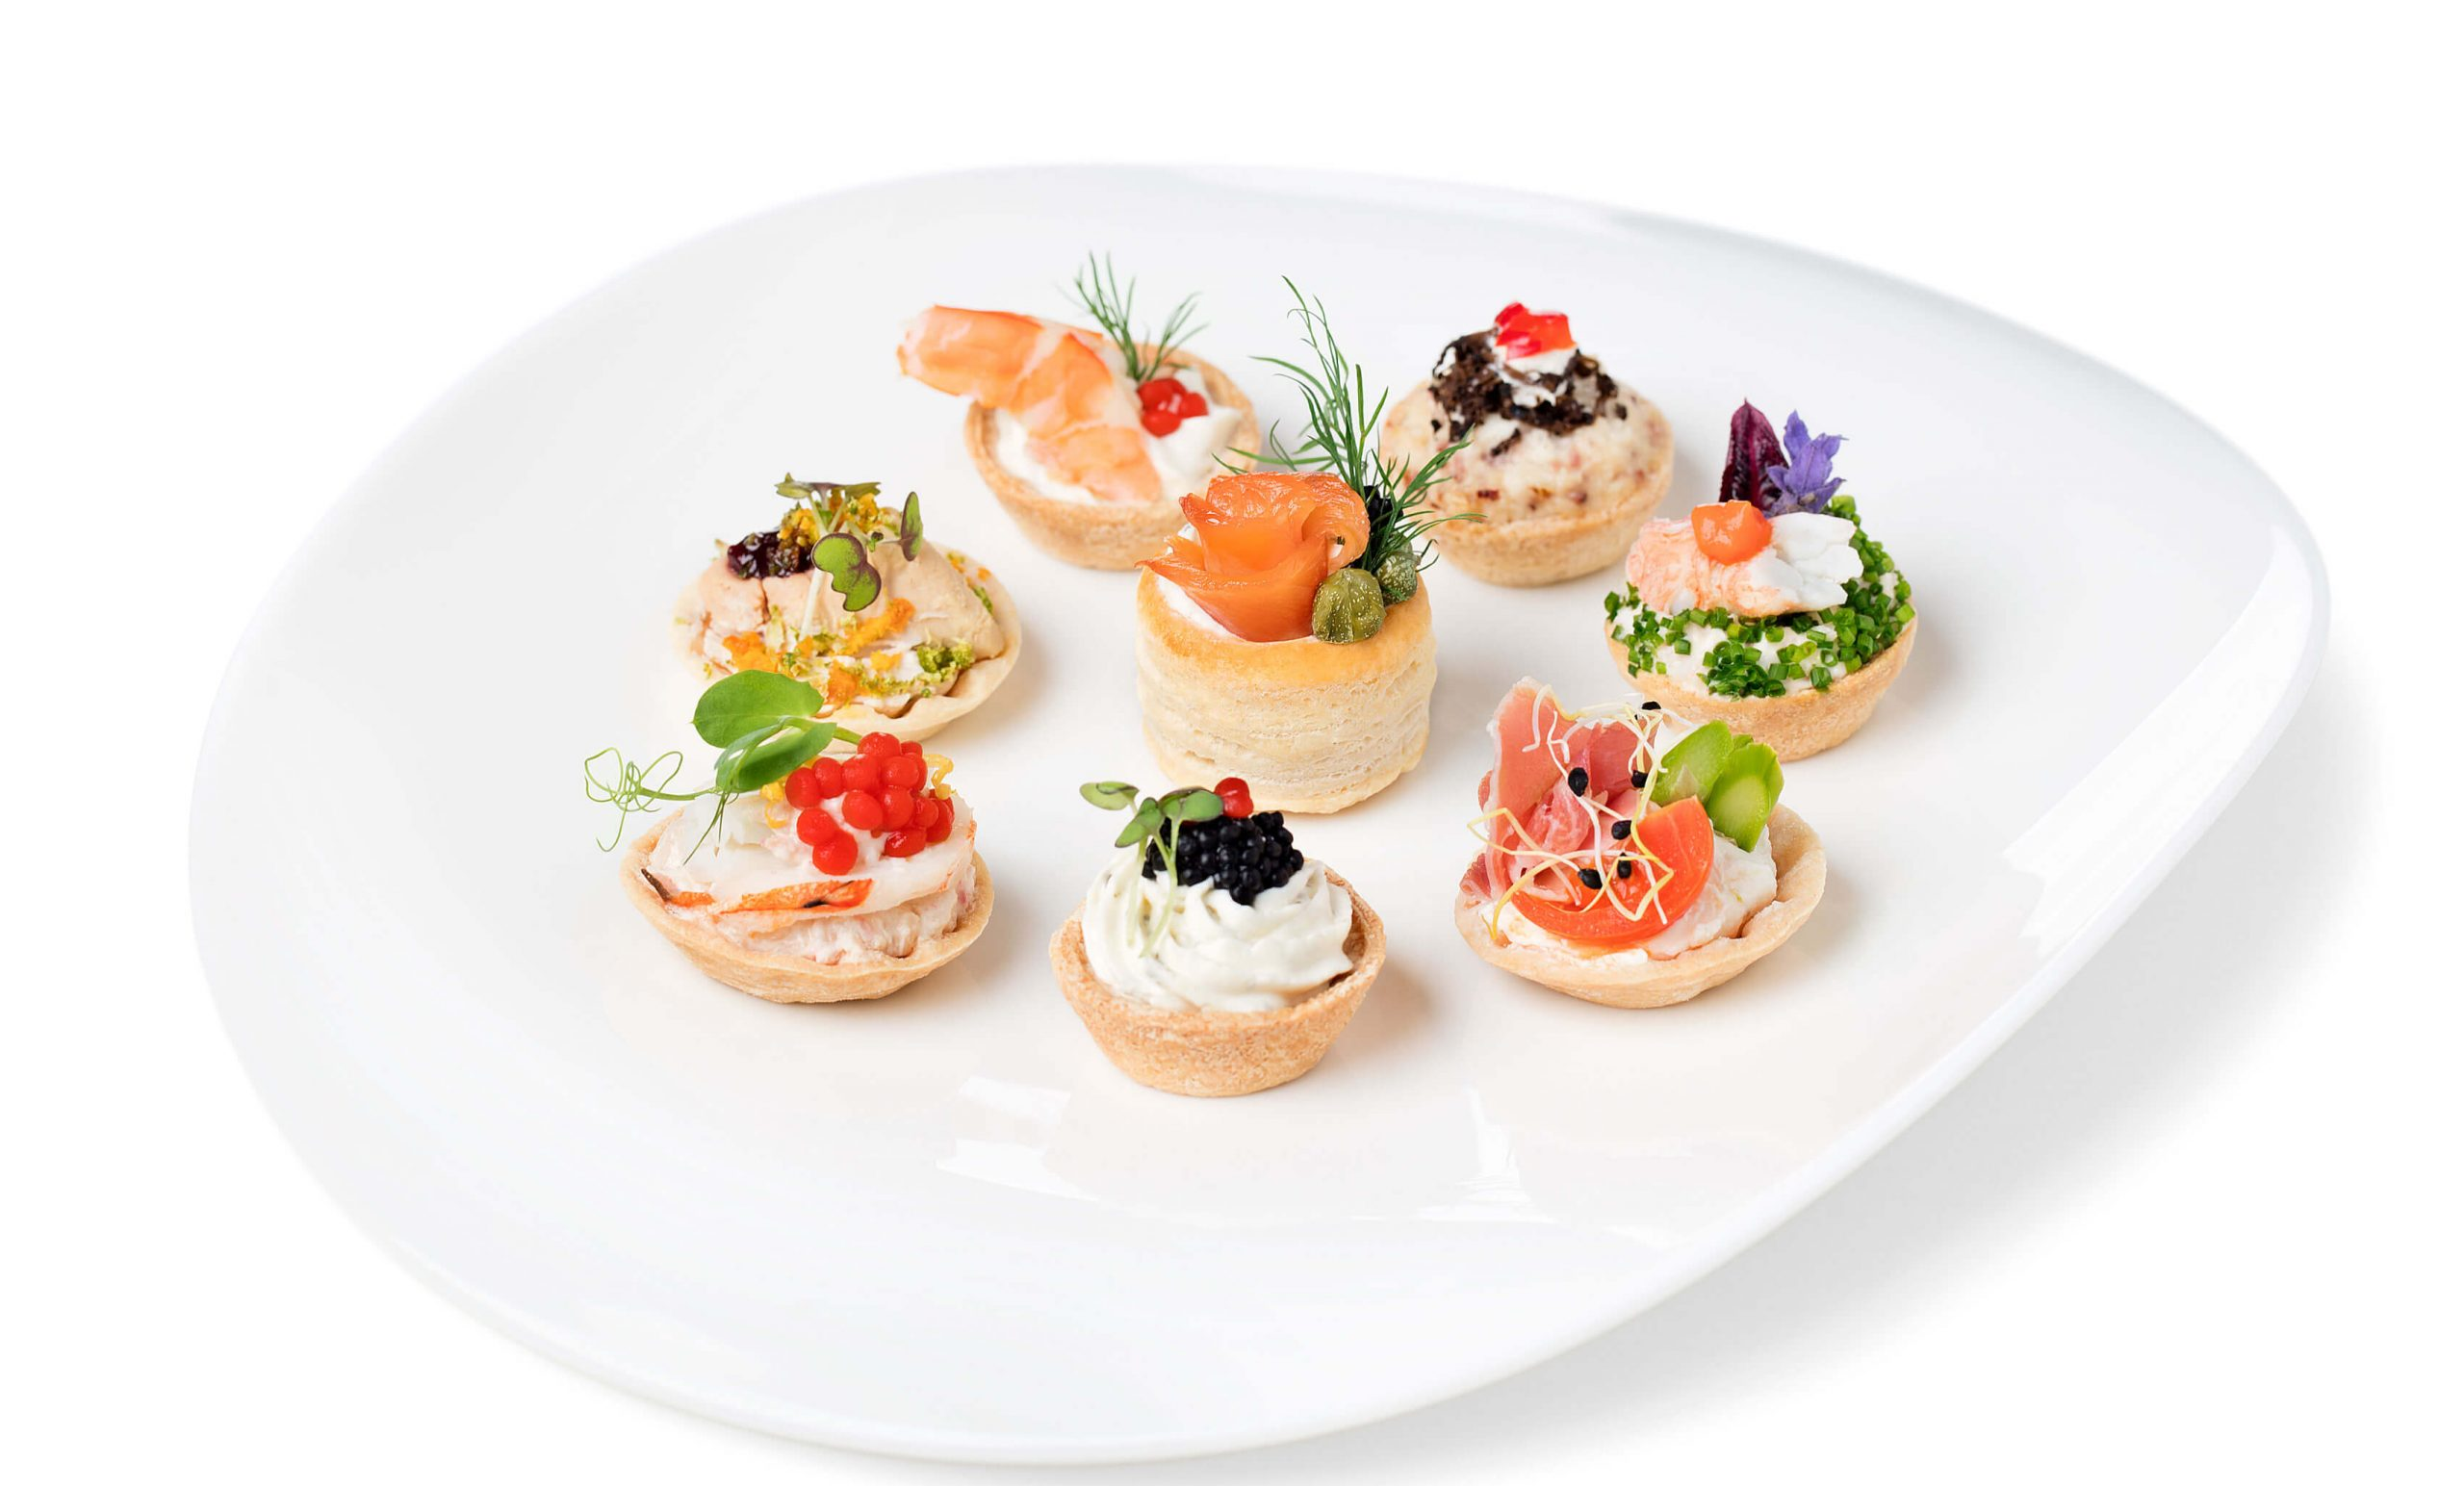 Catering unit specialized in Business Aviation